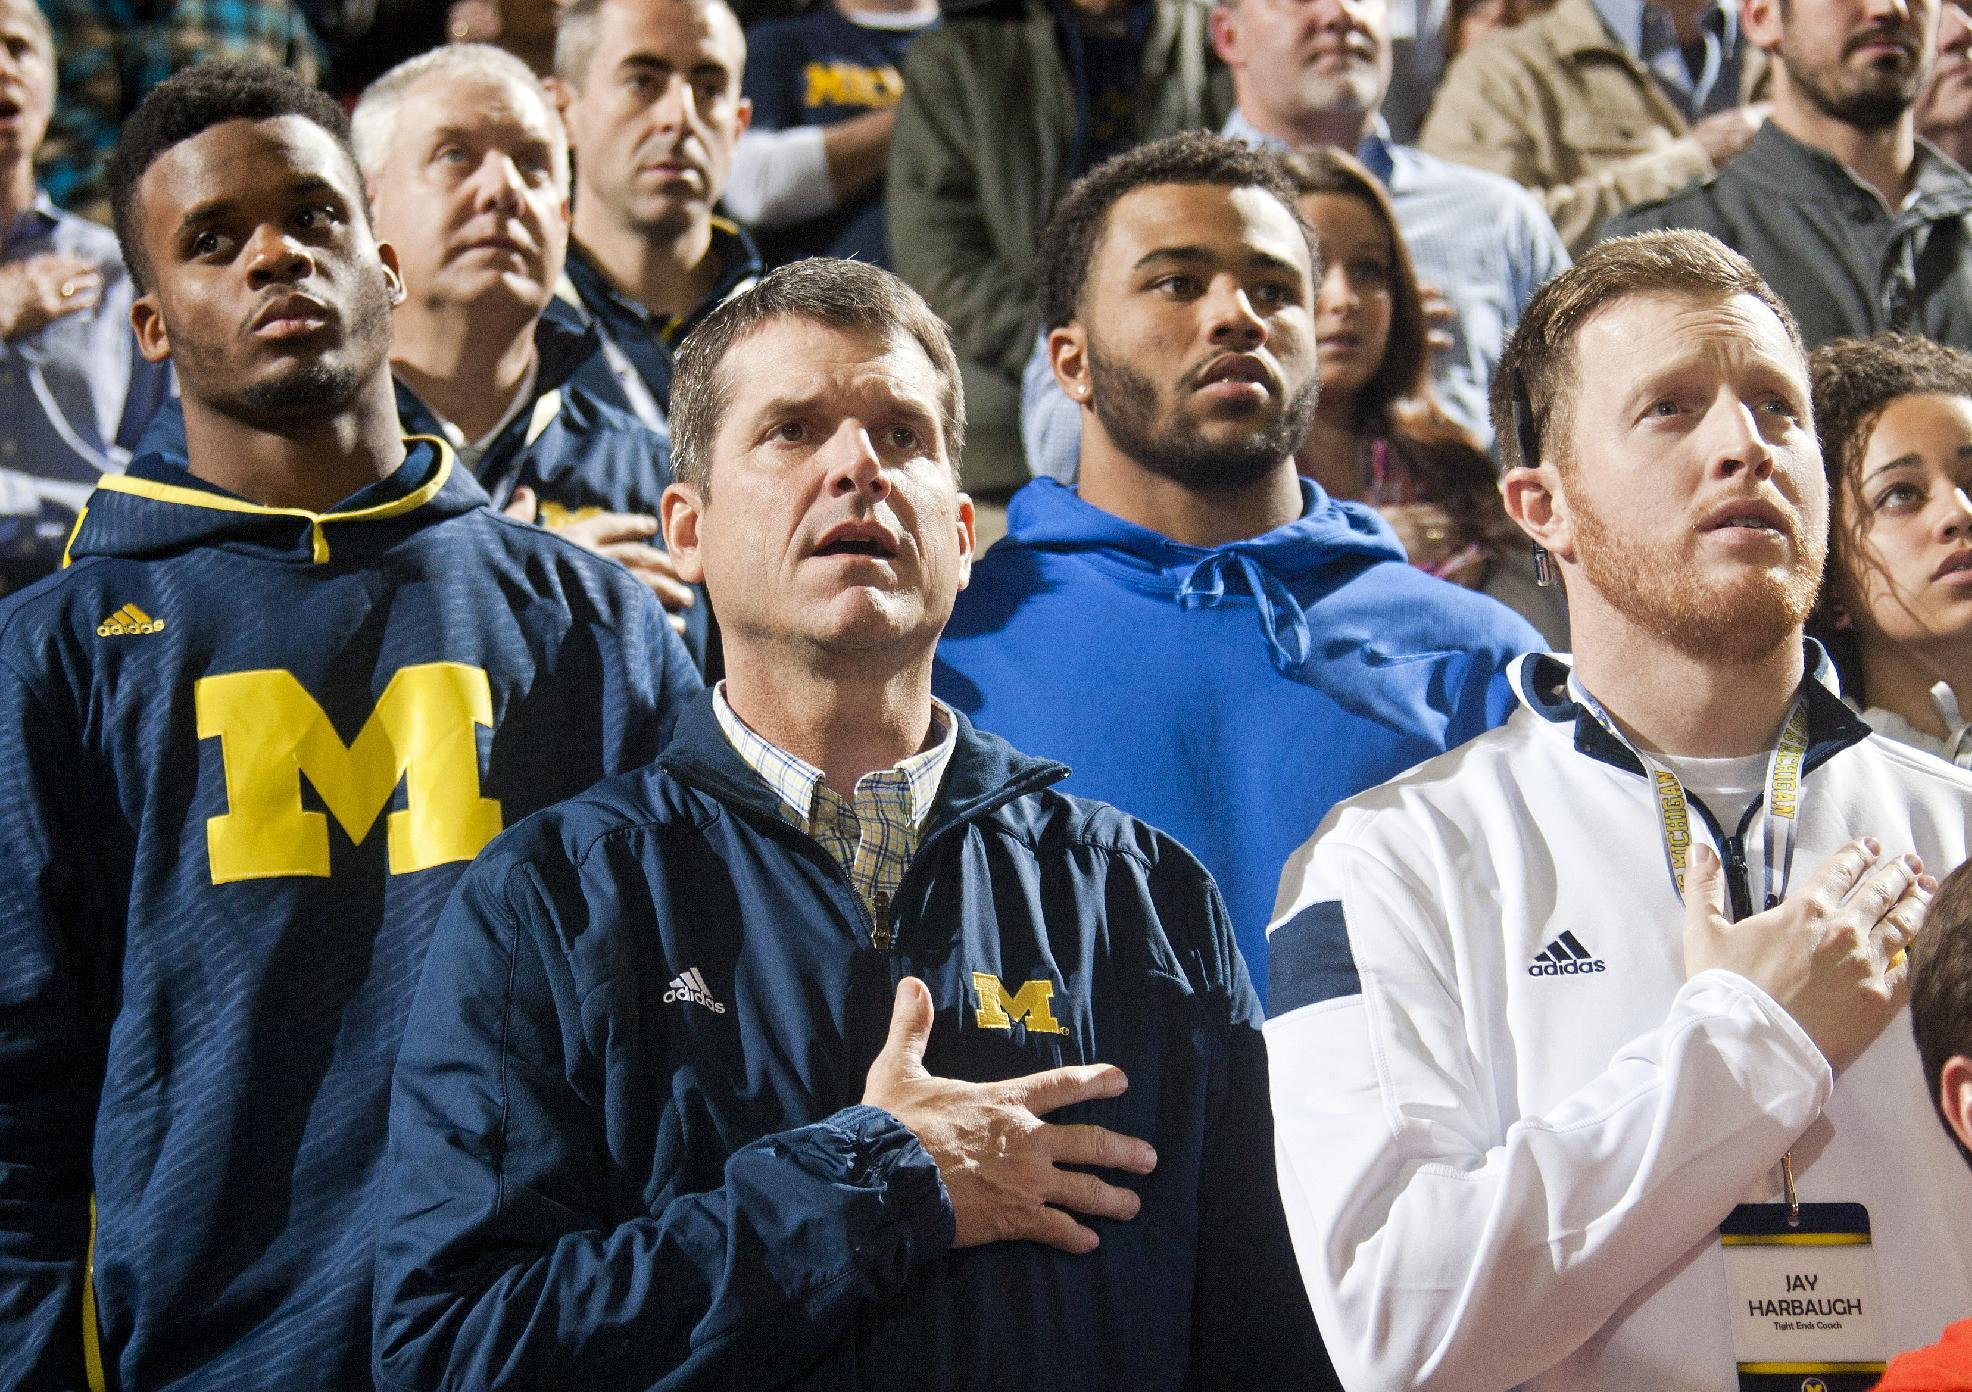 Woman assisted by Jim Harbaugh in crash didn't know him